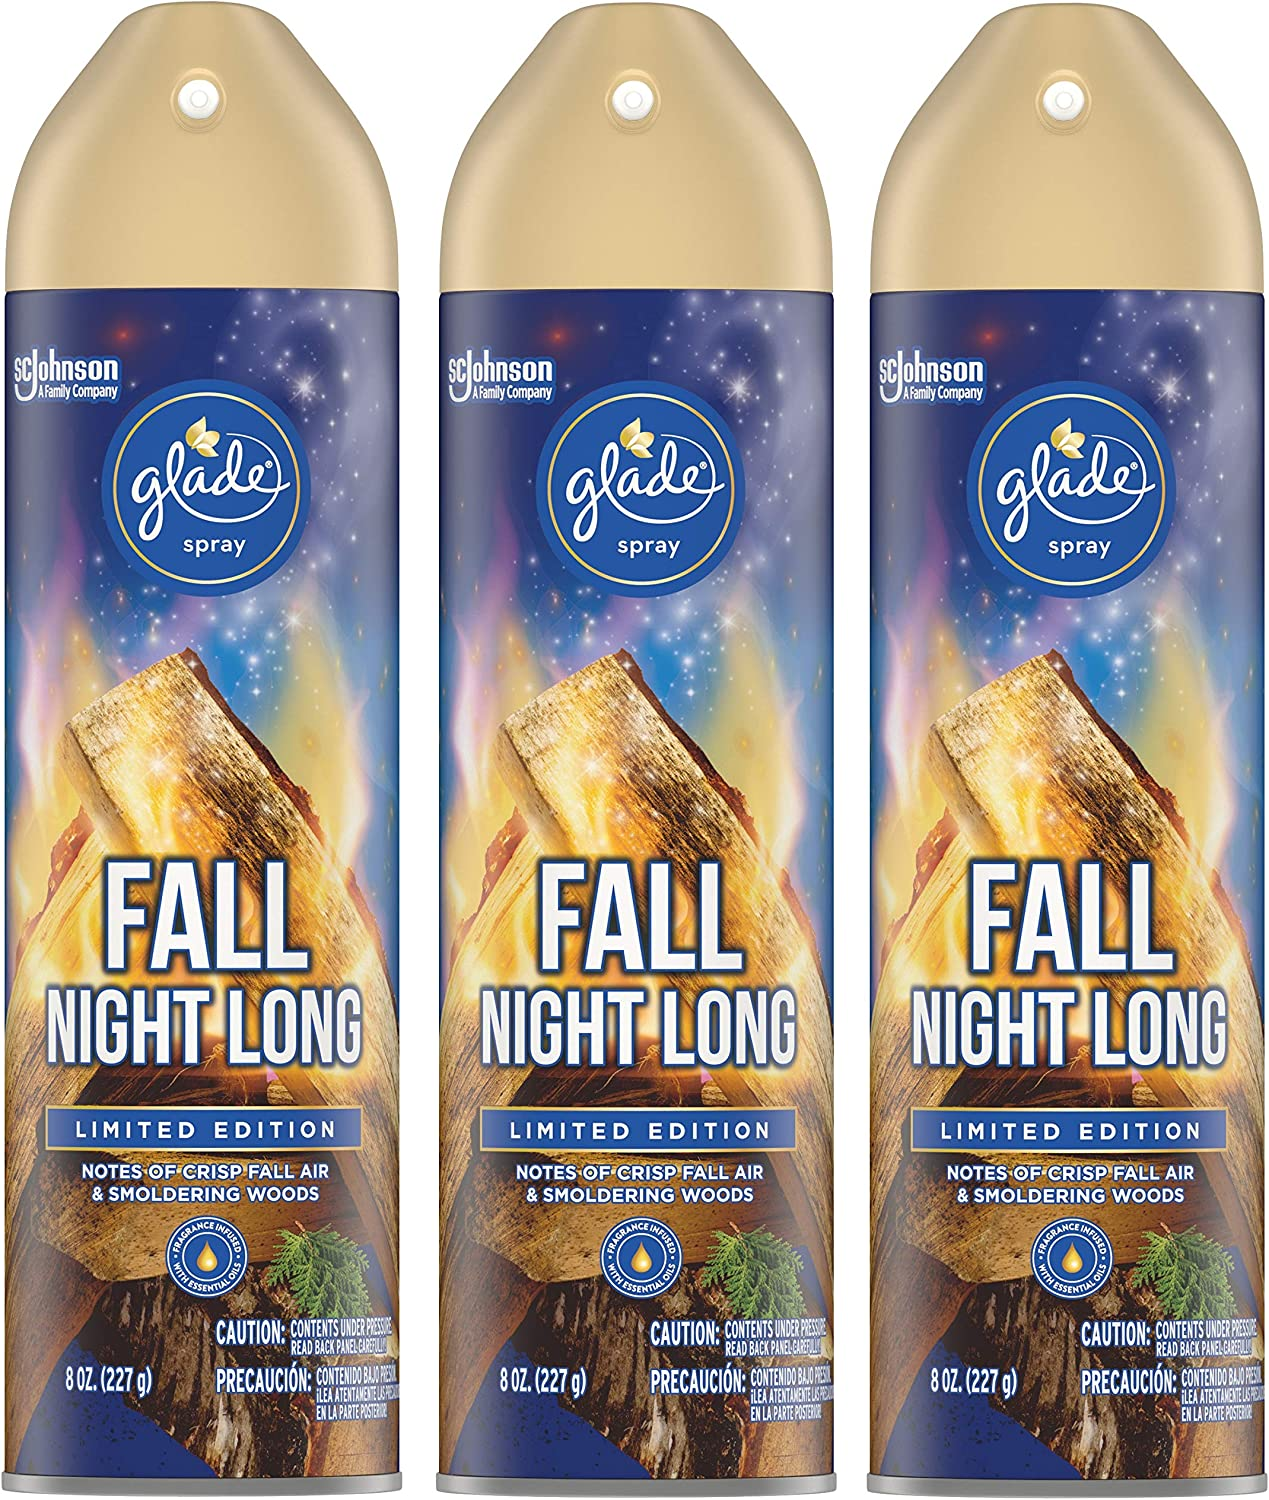 Glade Air Freshener Spray - Fall Night Long - Holiday Collection 2020 - Net Wt. 8 OZ (227 g) Per Can - Pack of 3 Cans